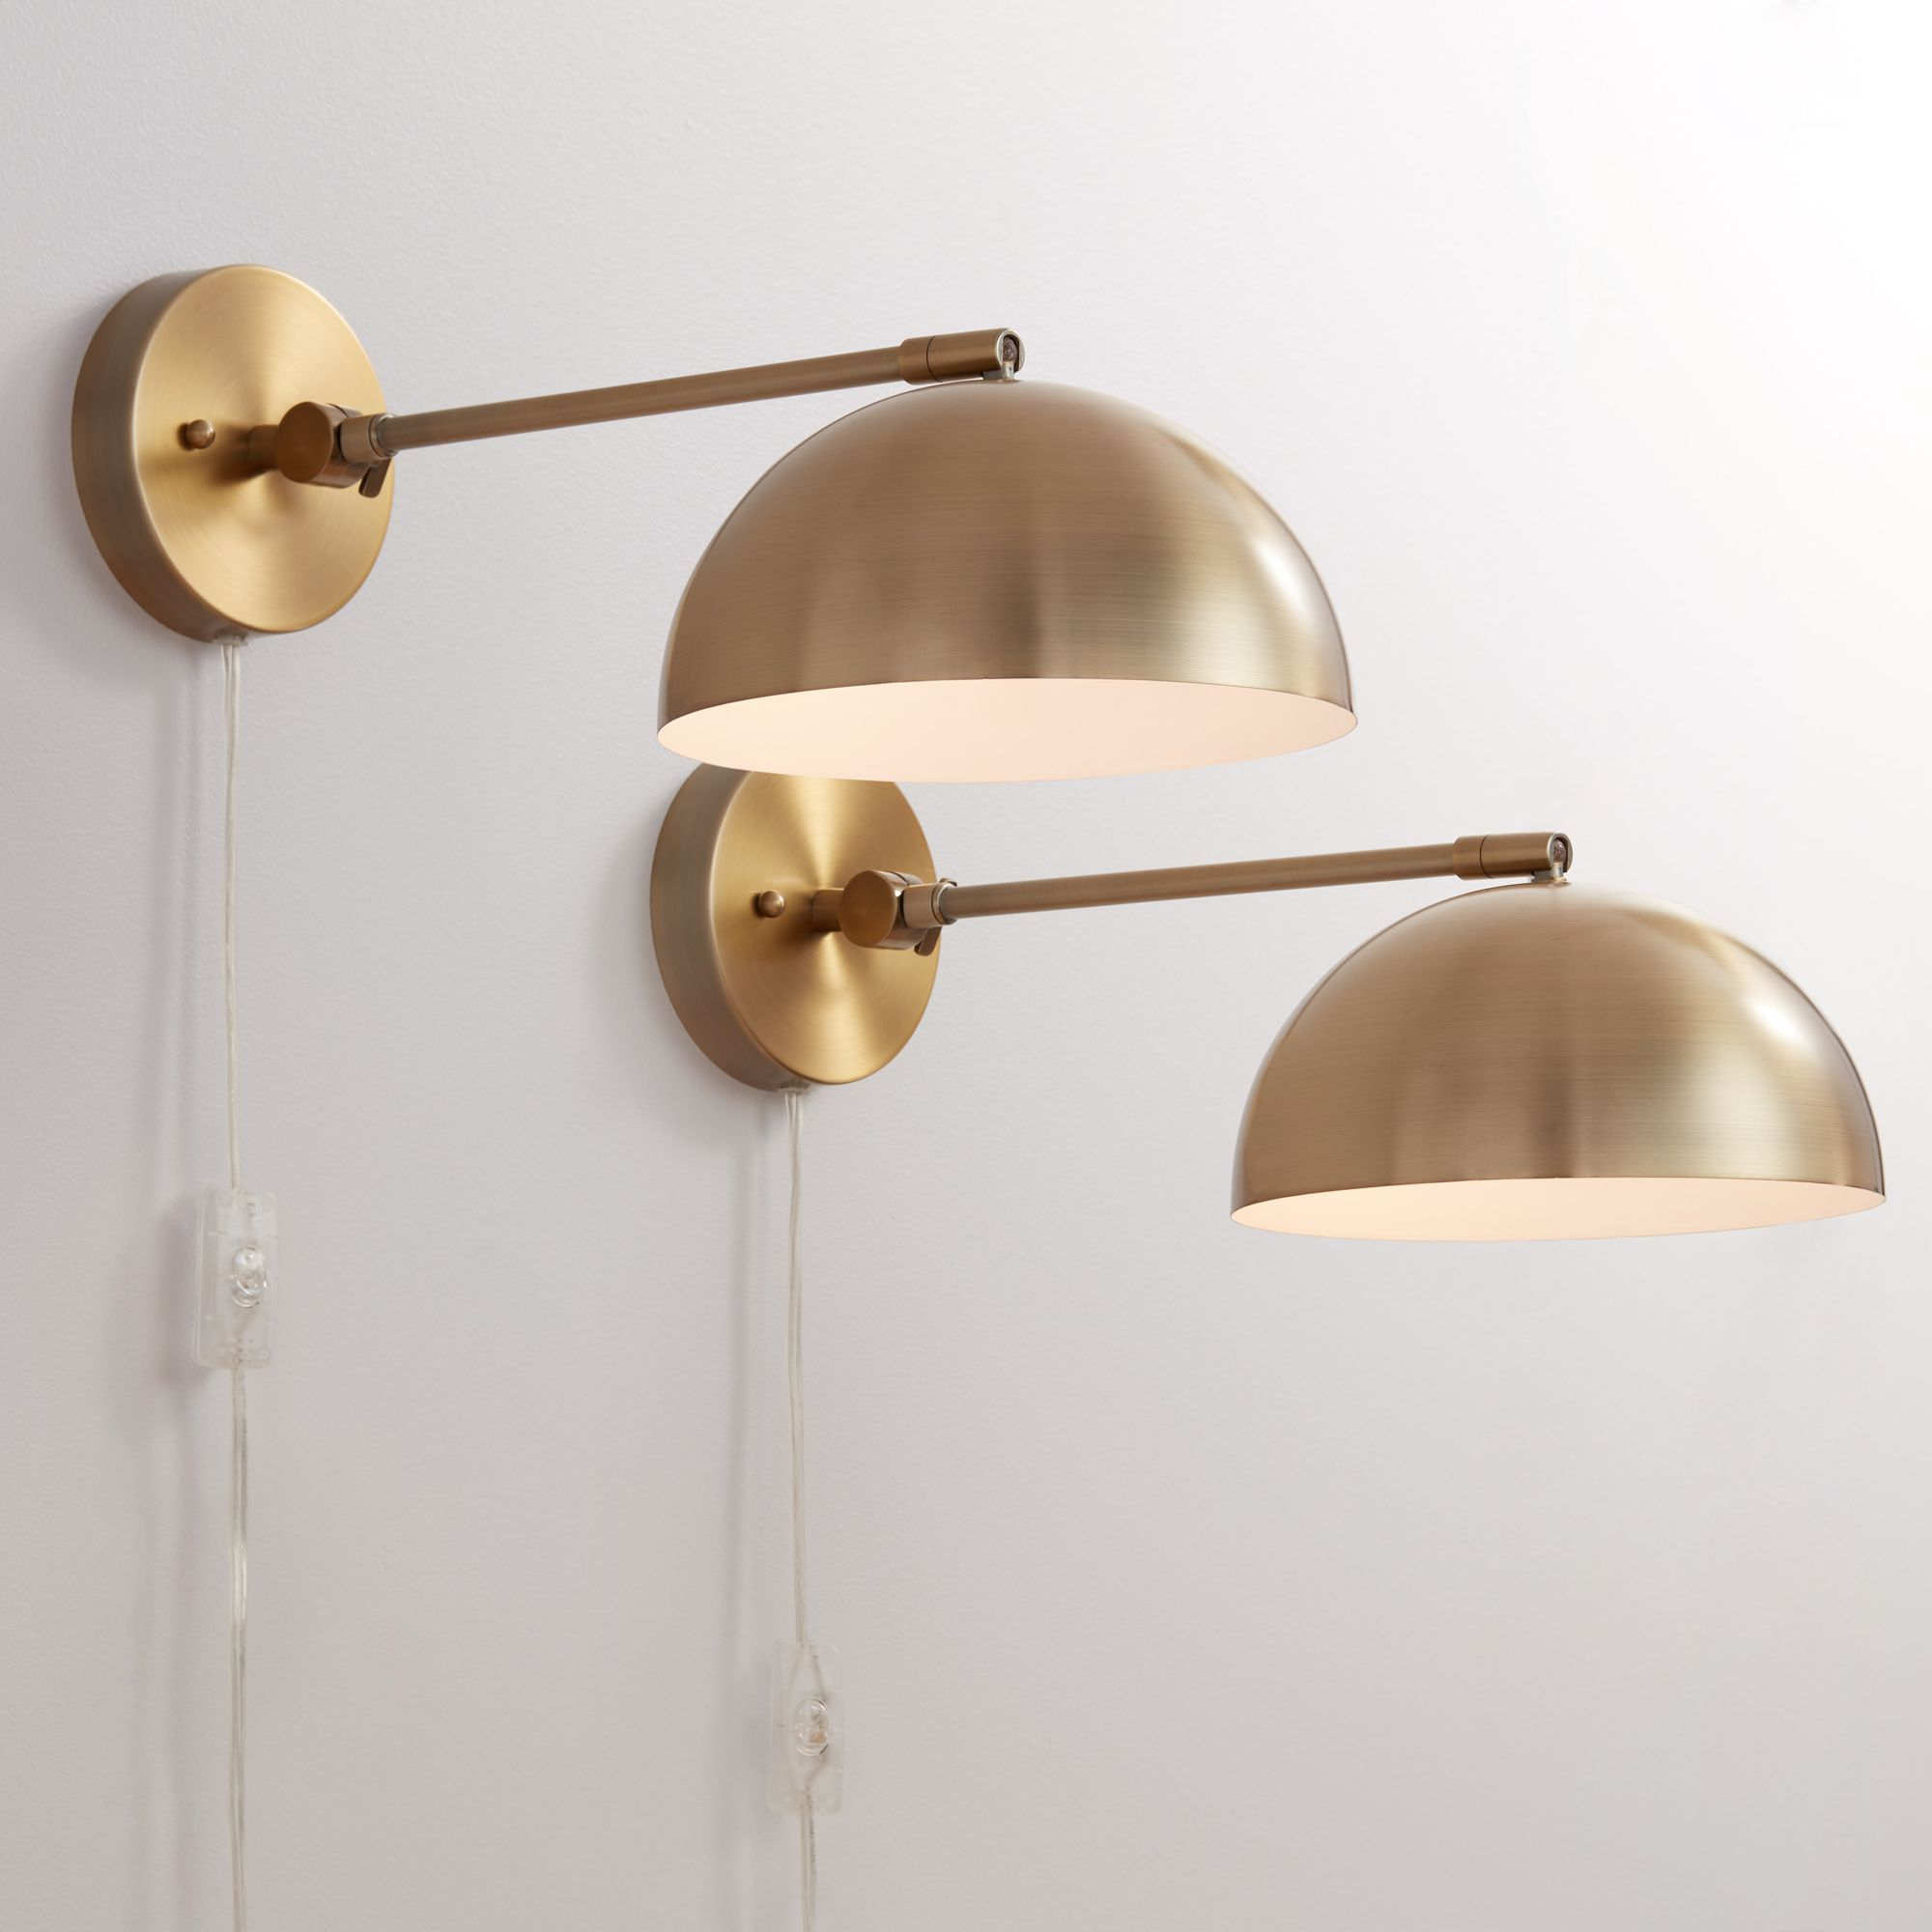 360 Lighting Brava Antique Brass Down-Light Wall Lamp Set Of 2 by 360 Lighting